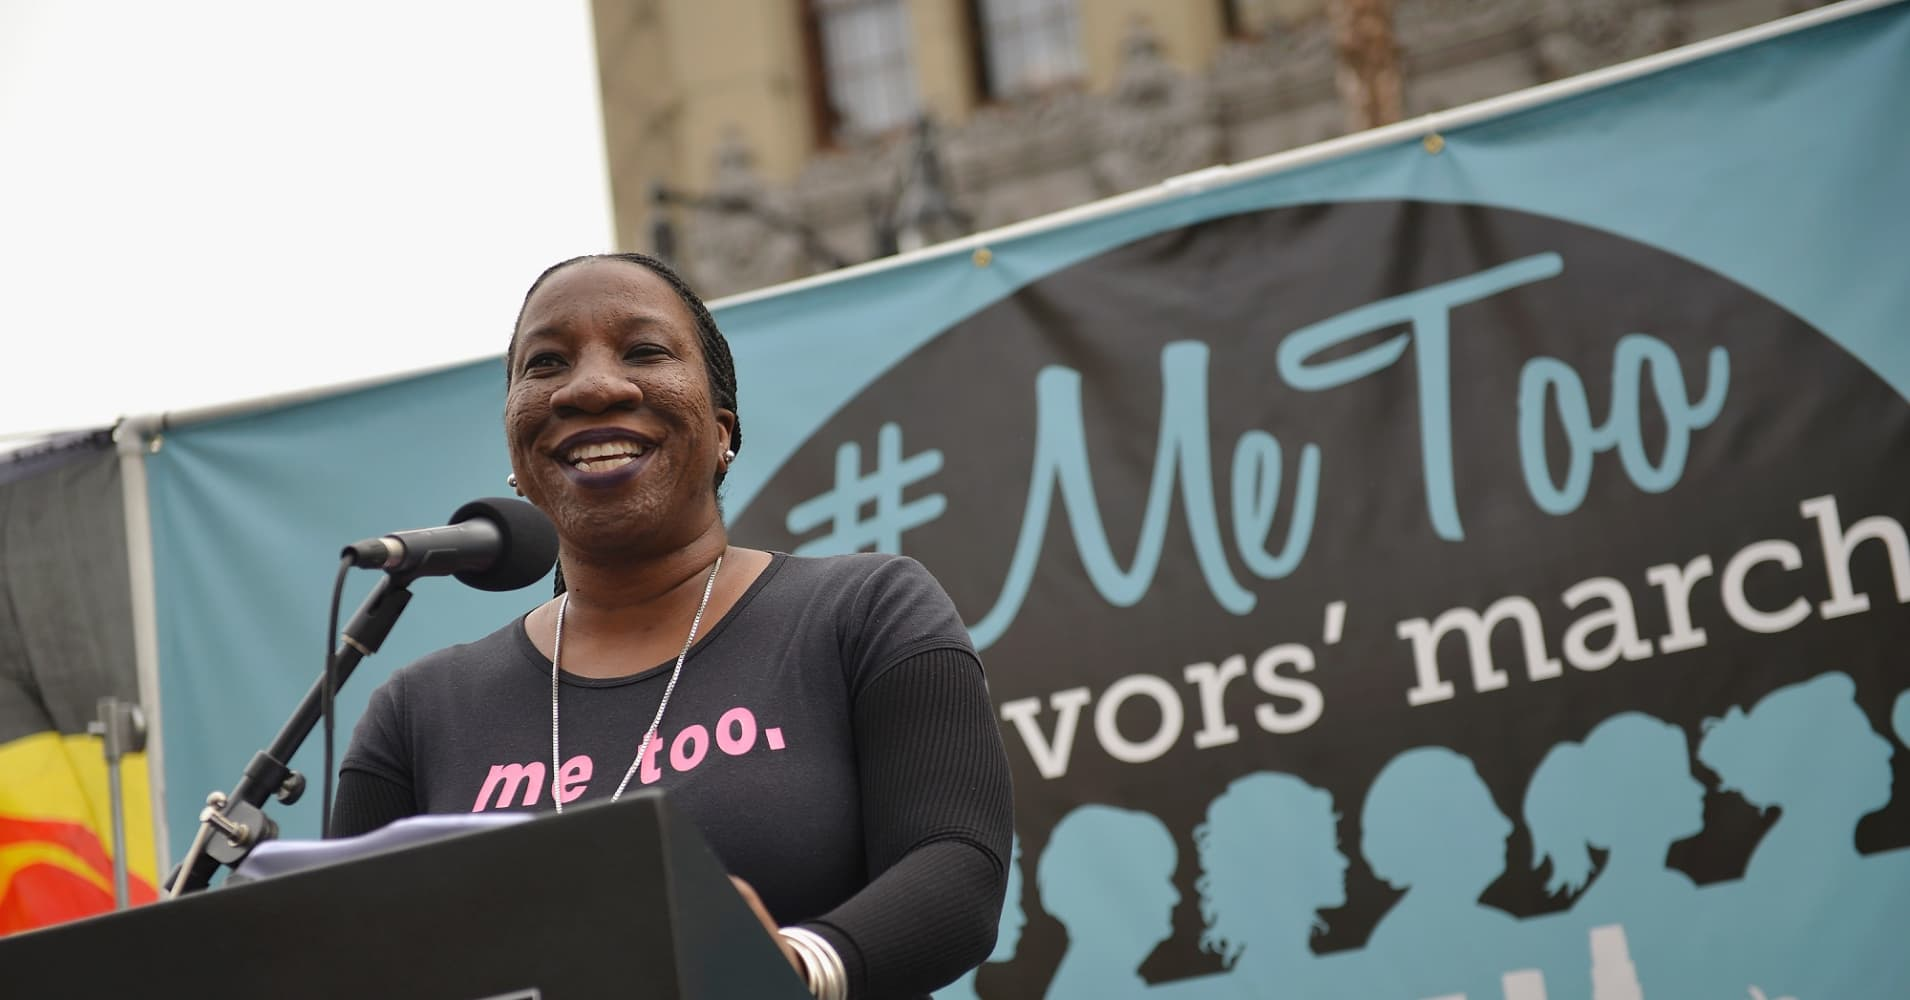 #MeToo founder Tarana Burke has big plans for the movement ...